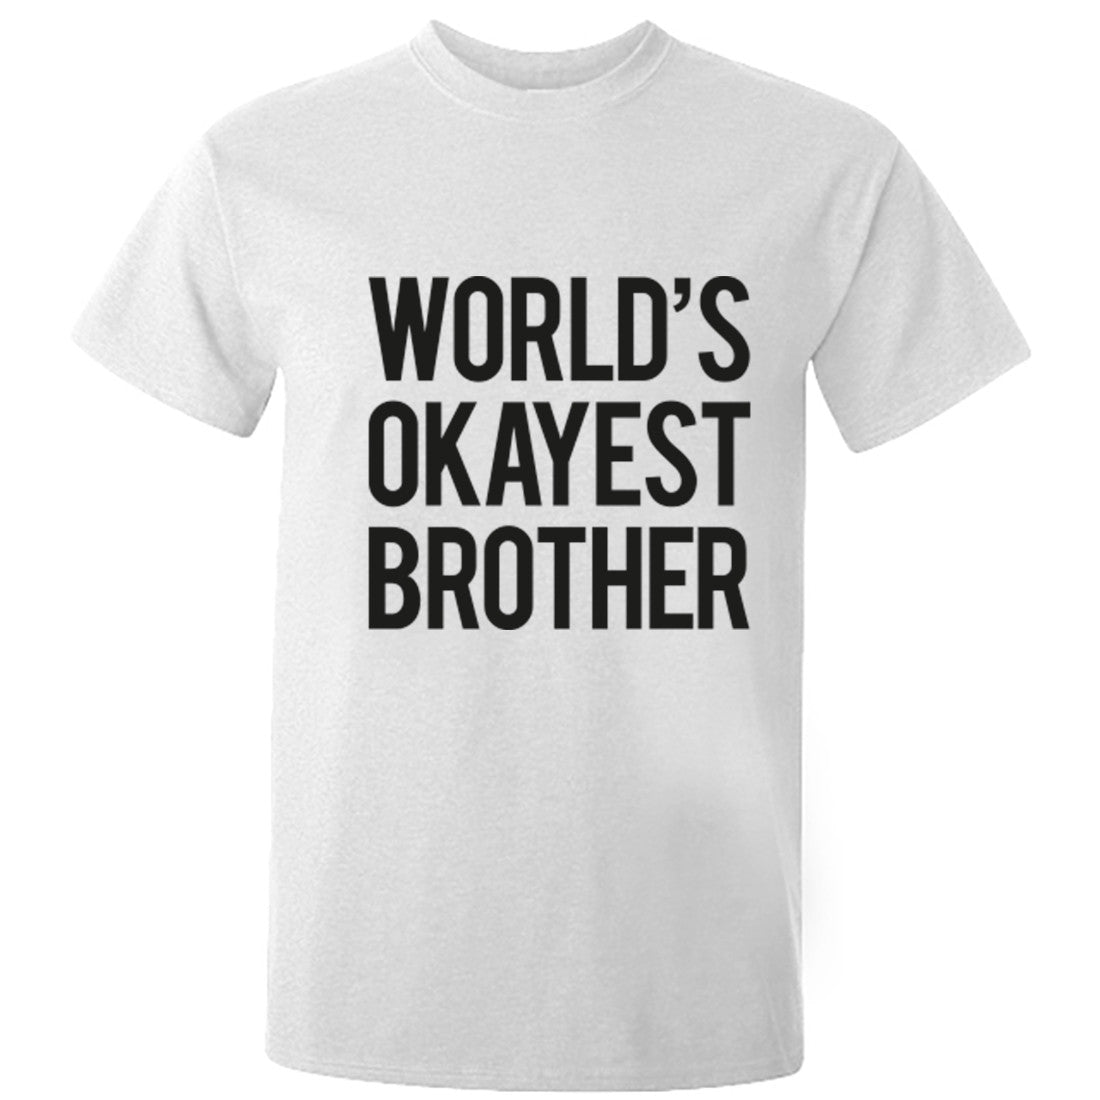 World's okayest brother unisex t-shirt K0237